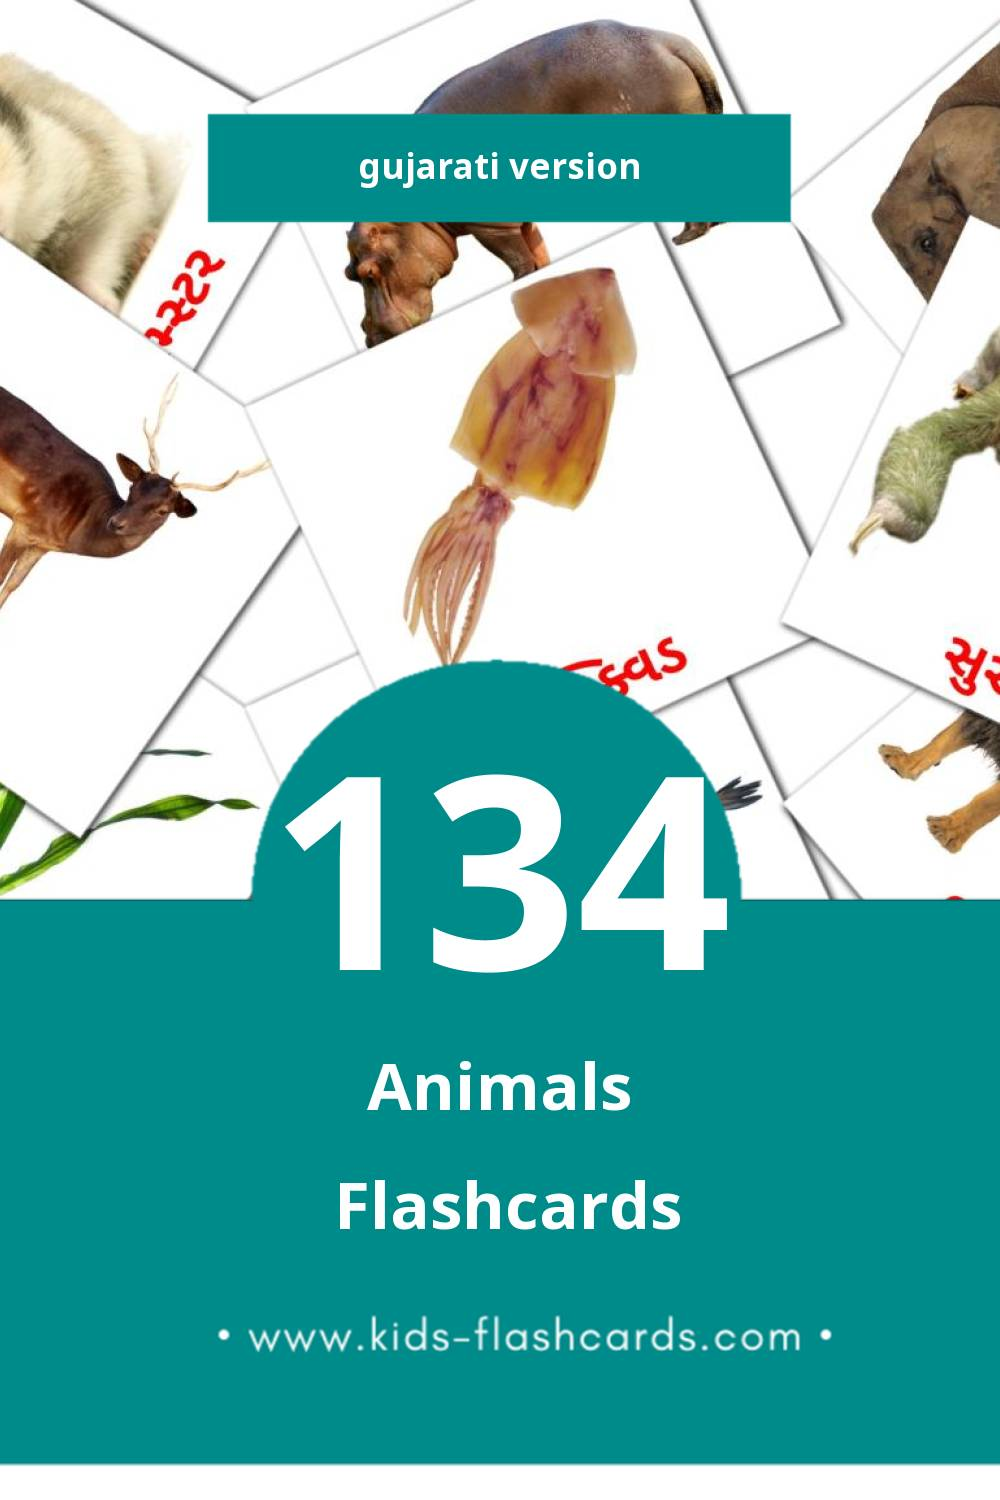 Visual Animals Flashcards for Toddlers (134 cards in Gujarati)